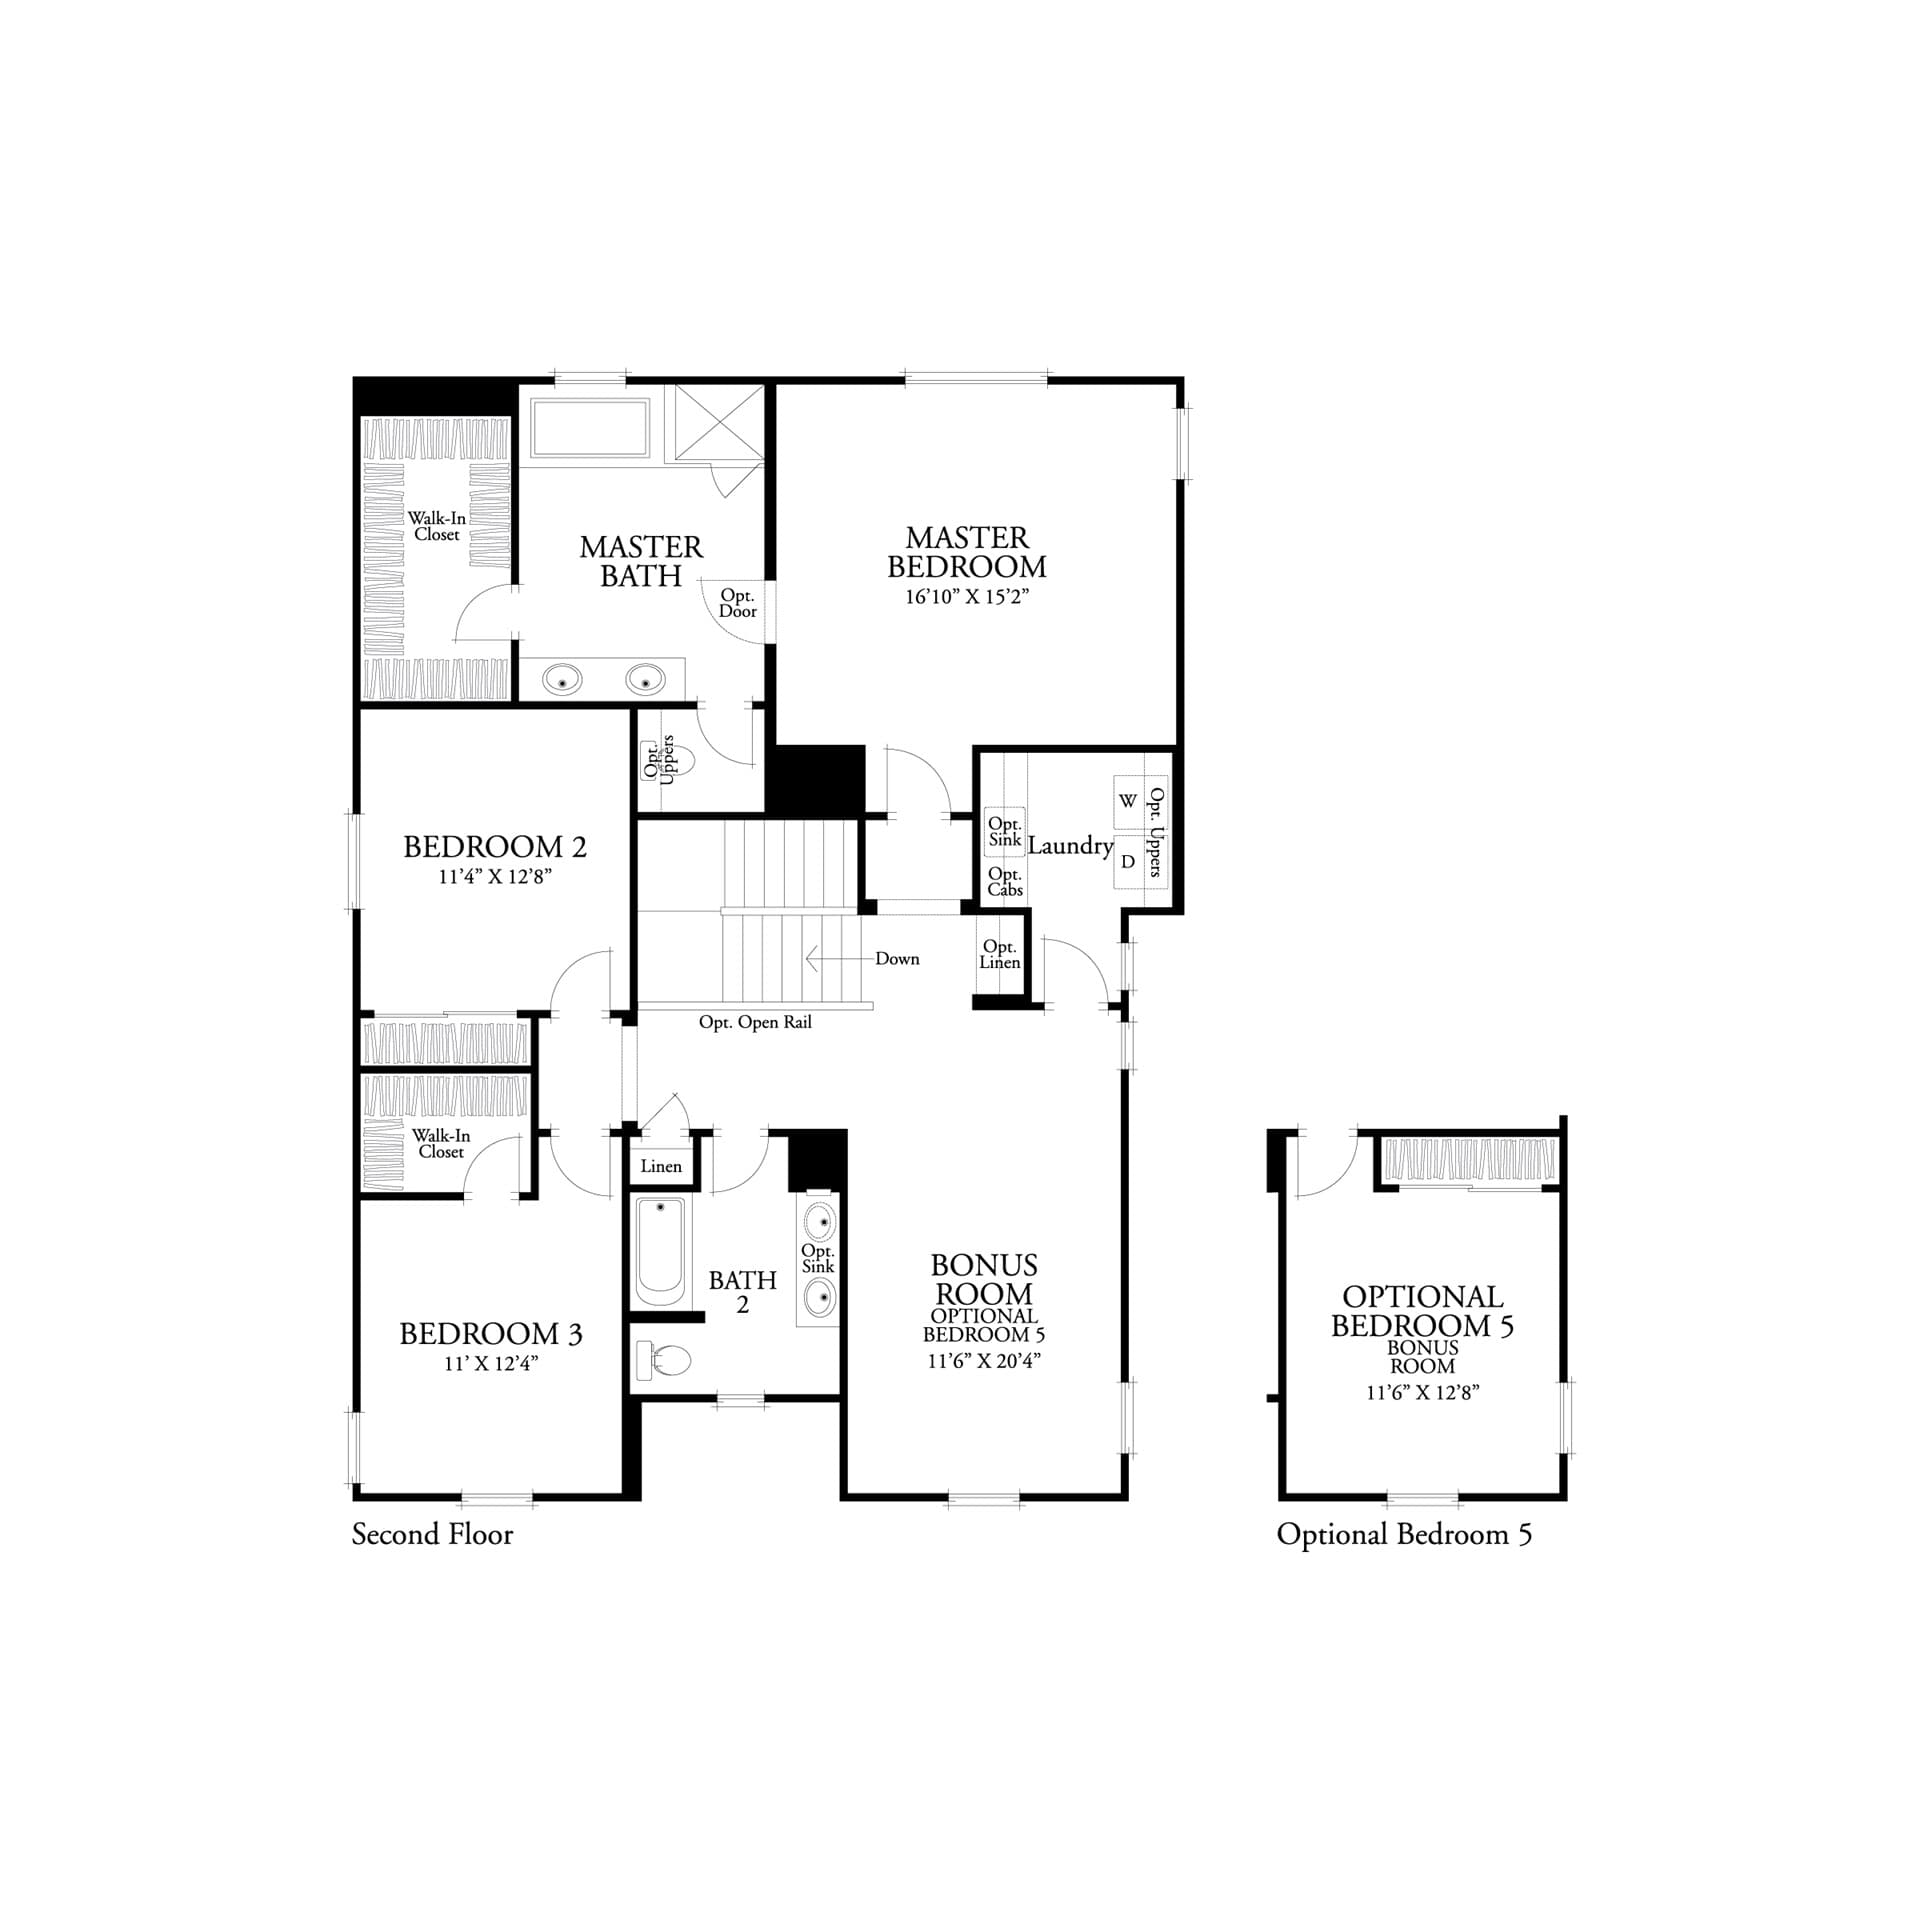 Second floor residence 2 floor plan | Marigold at New Haven in Ontario Ranch, CA | Brookfield Residential